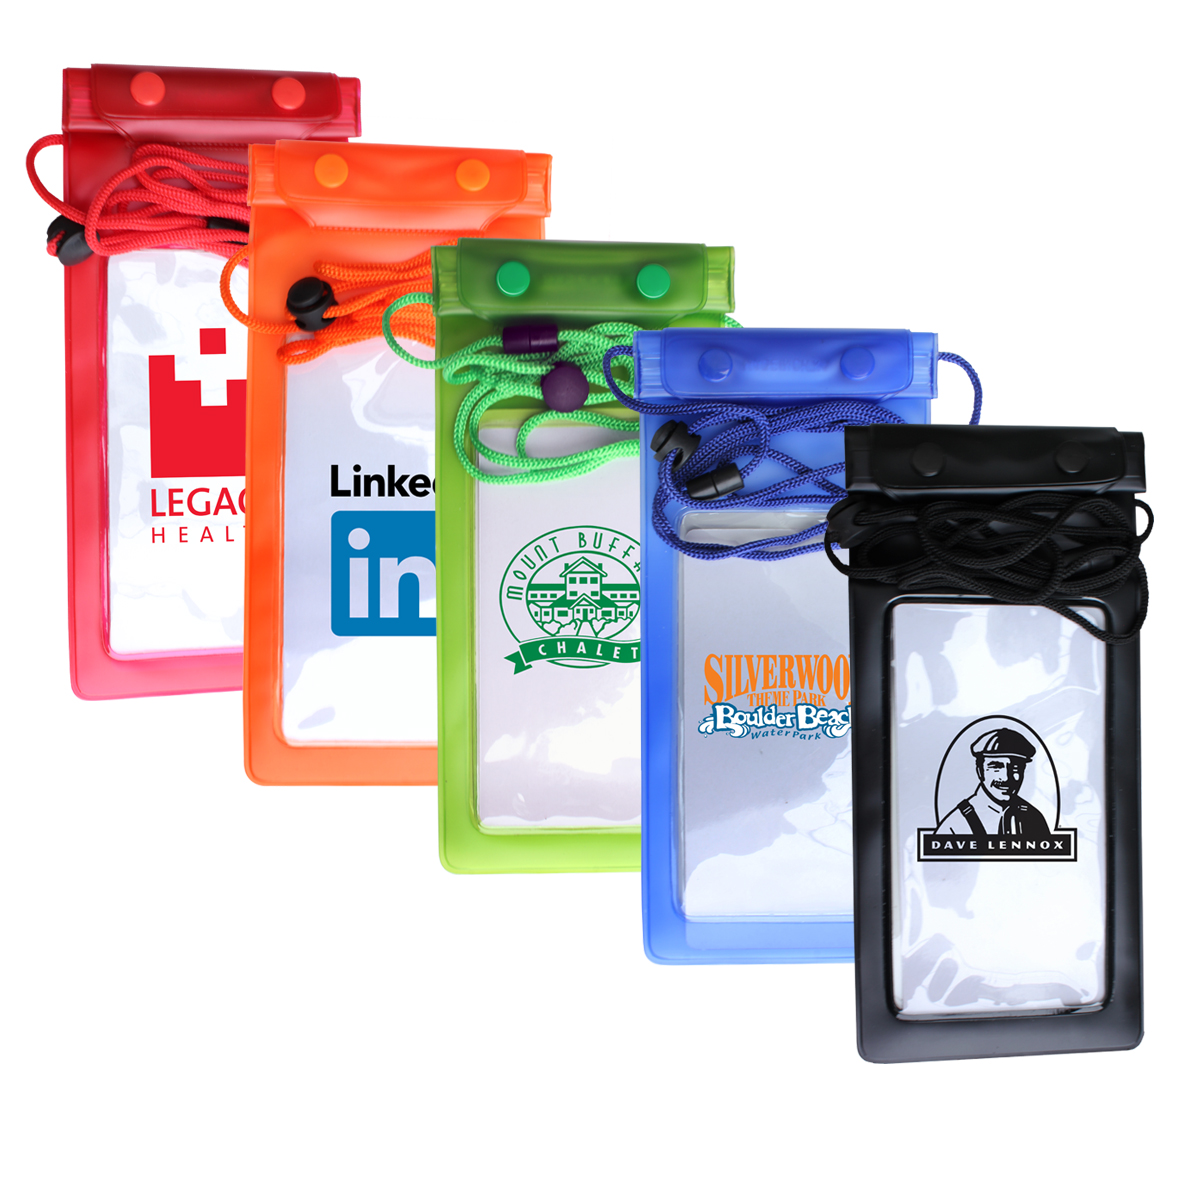 Large Waterproof Cell Phone Bag